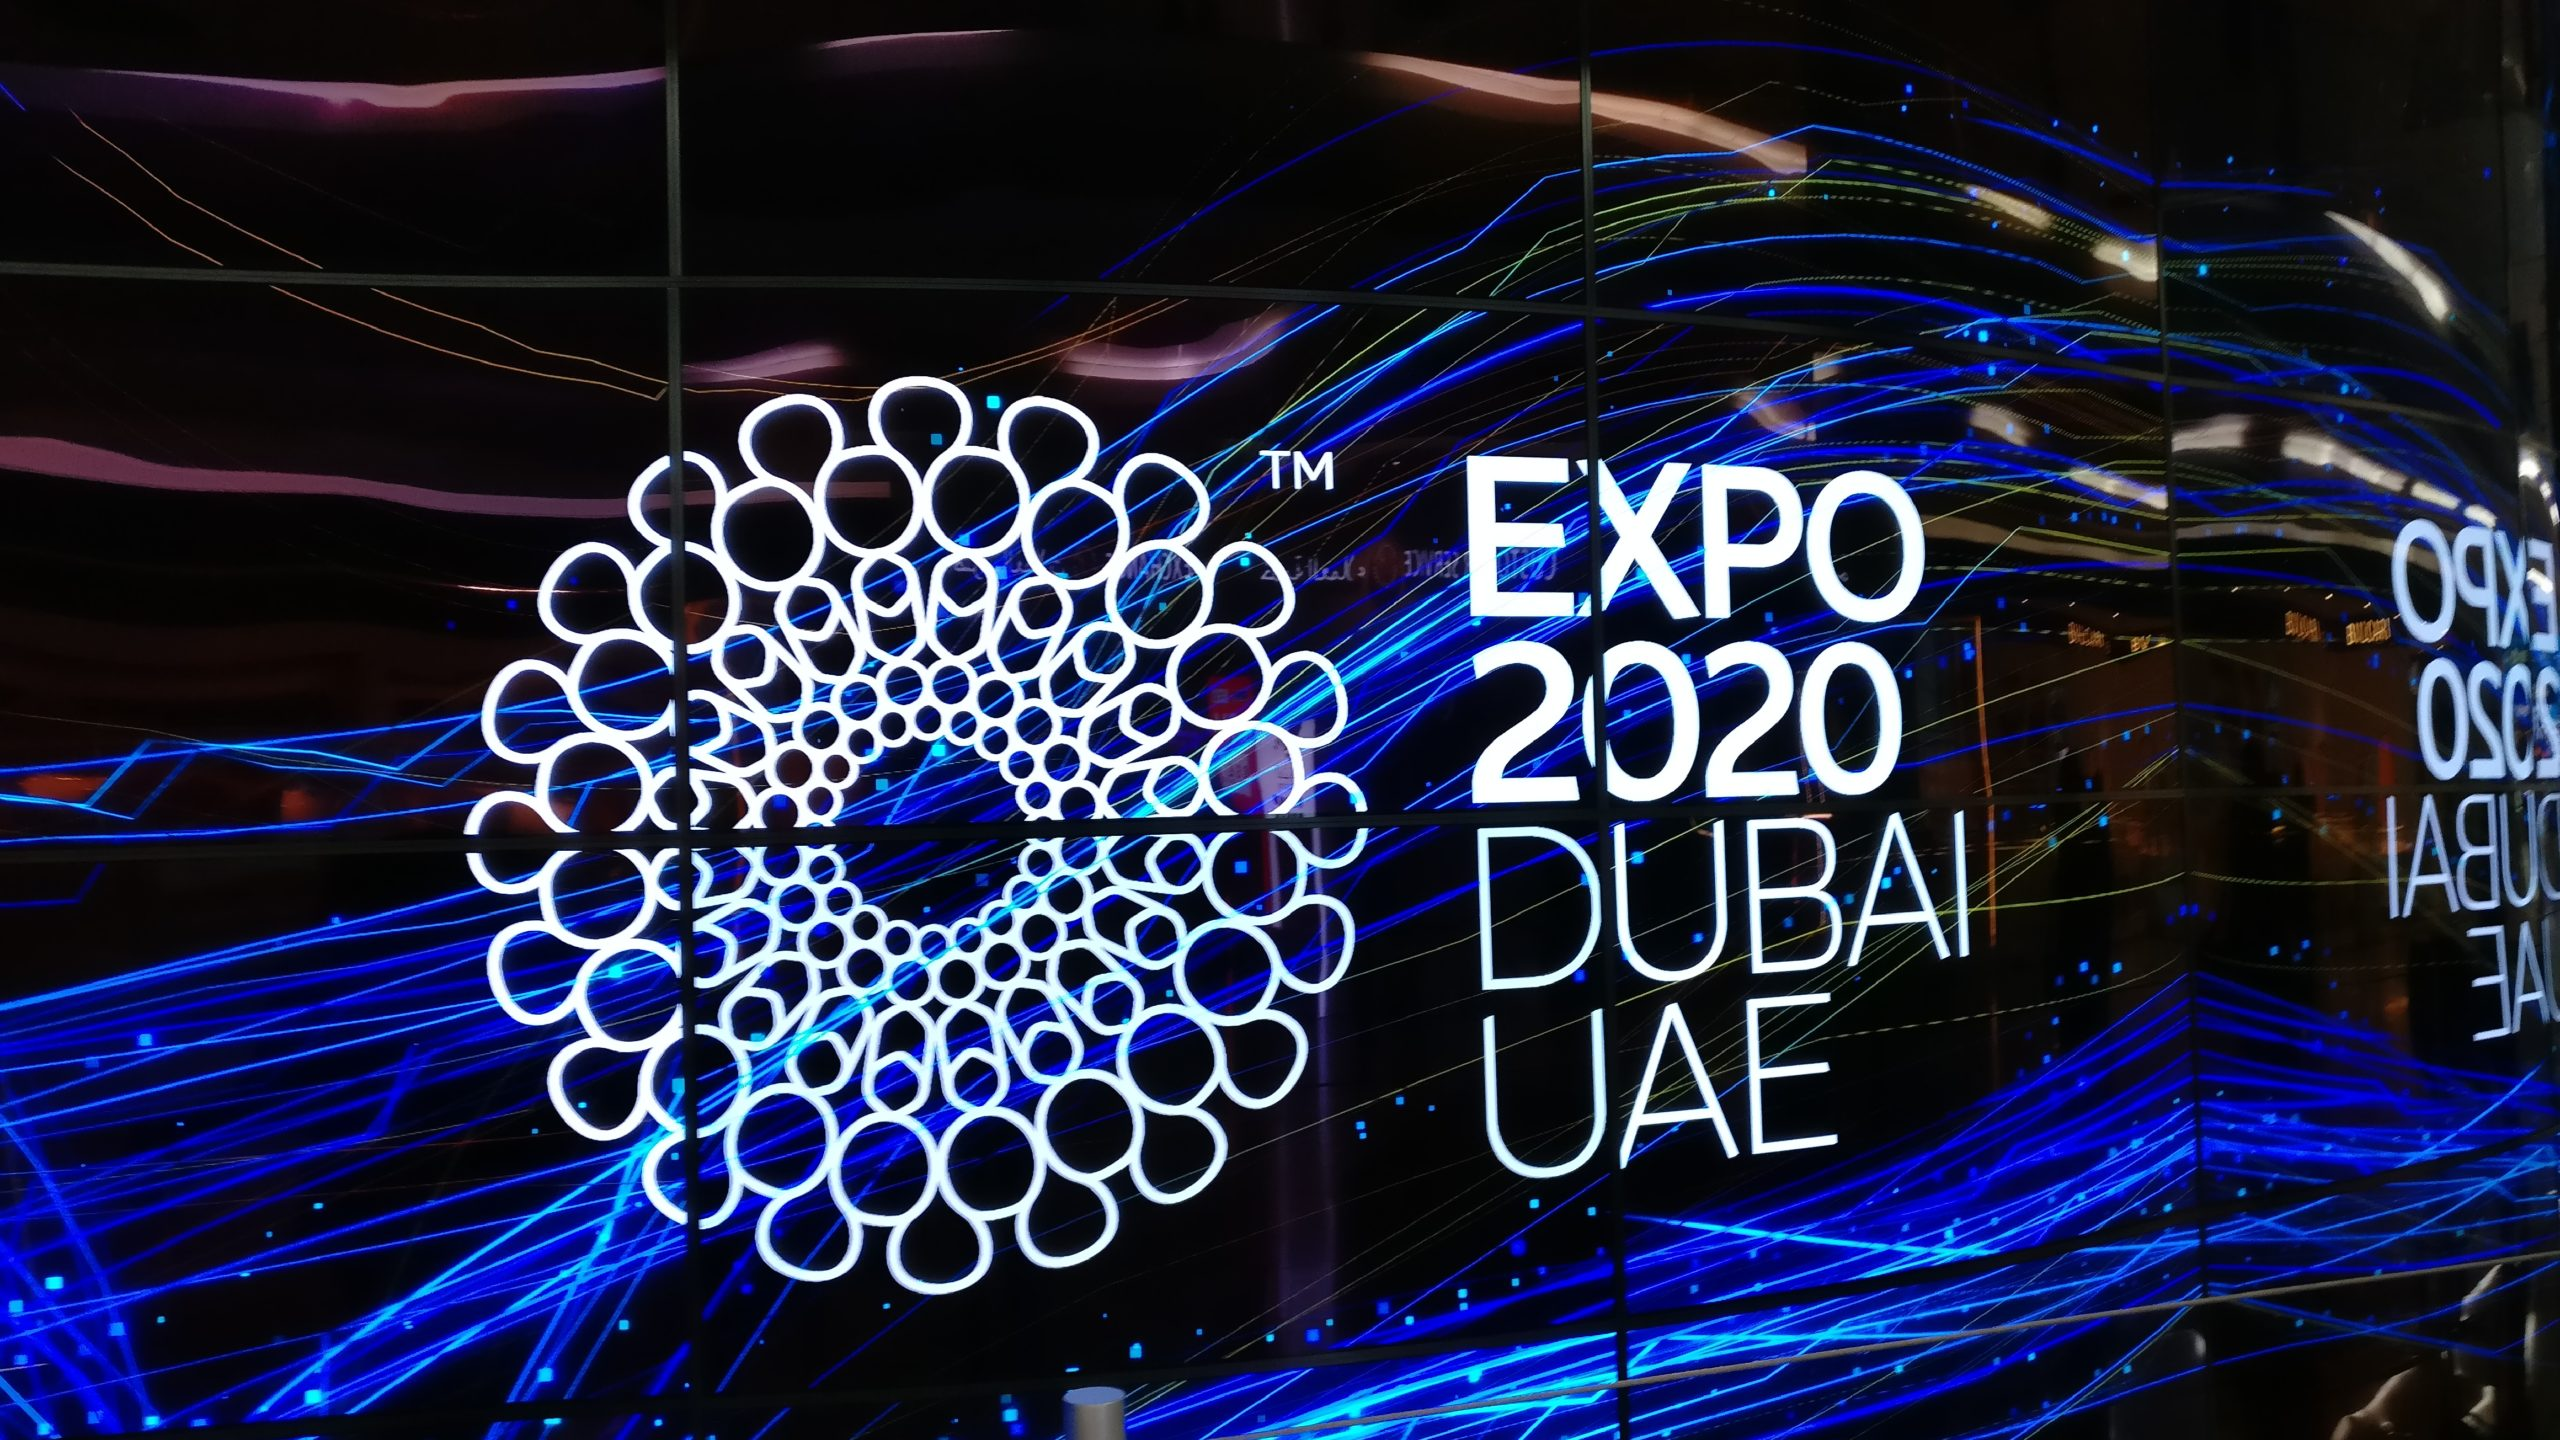 Expo 2020 Dubai site will be a 'city of the future' after world fair